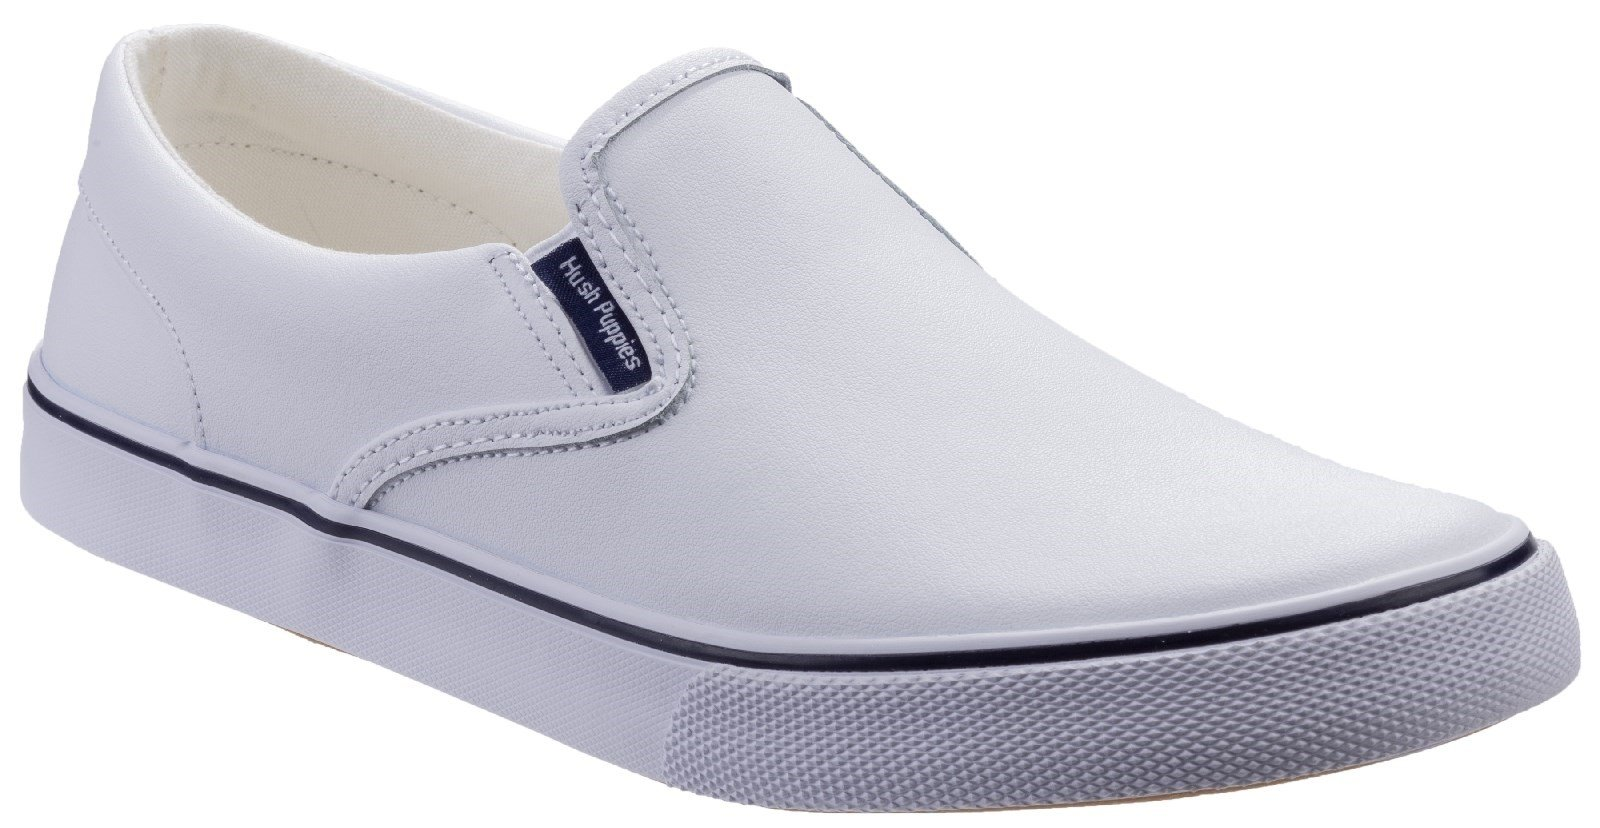 Hush Puppies Women's Byanca Slip On Shoe Various Colours 29716 - White Leather 6